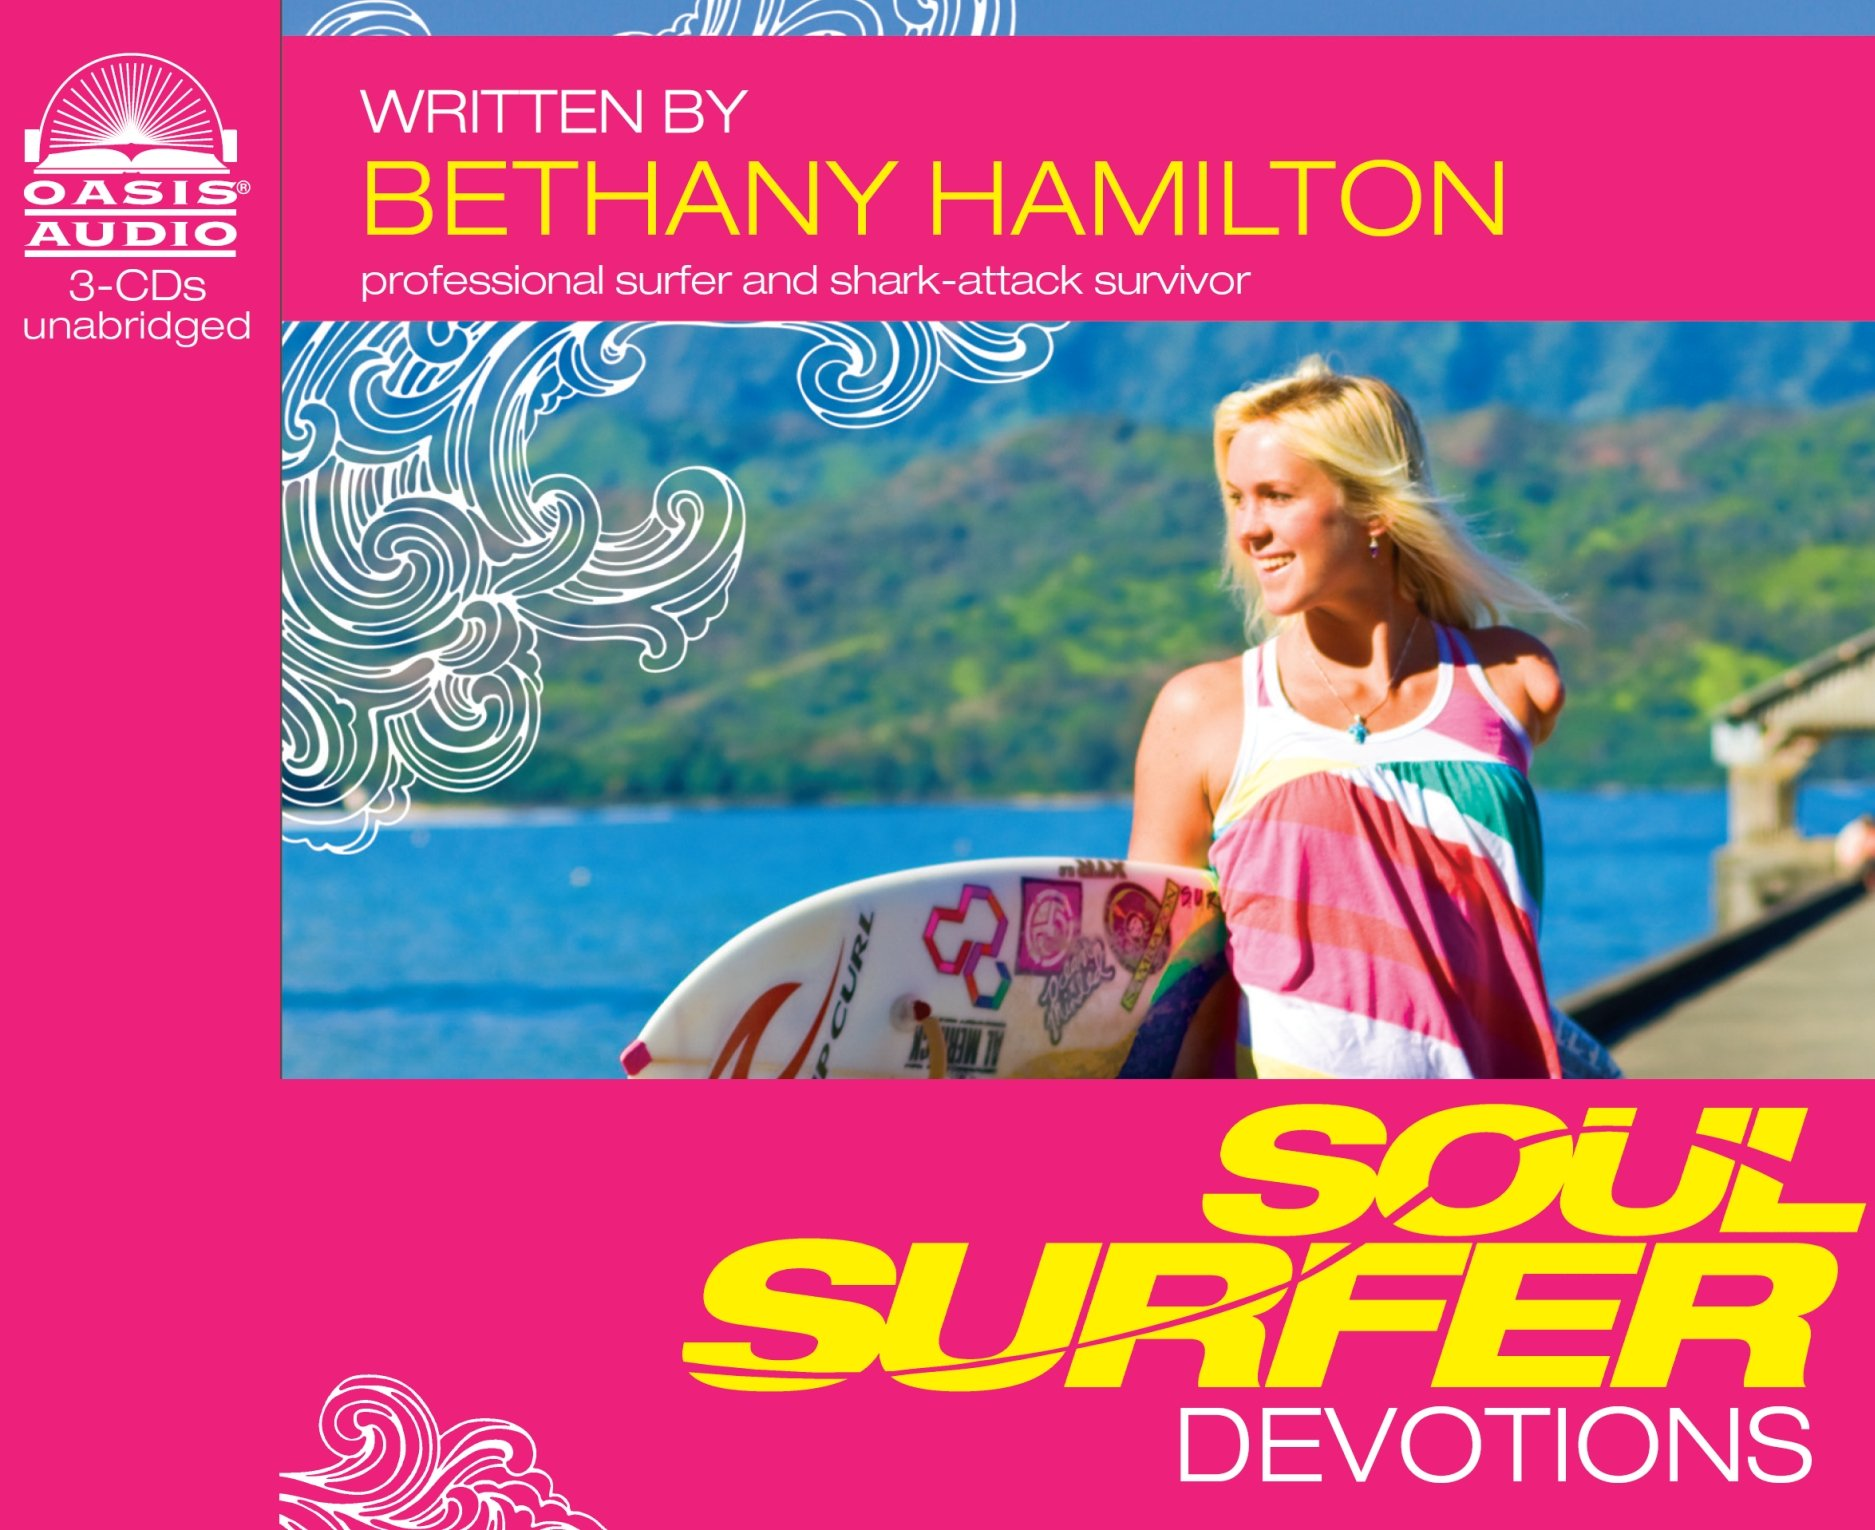 Soul Surfer Devotions: Amazon.co.uk: Bethany Hamilton, Eleni Pappageorge:  9781598599282: Books